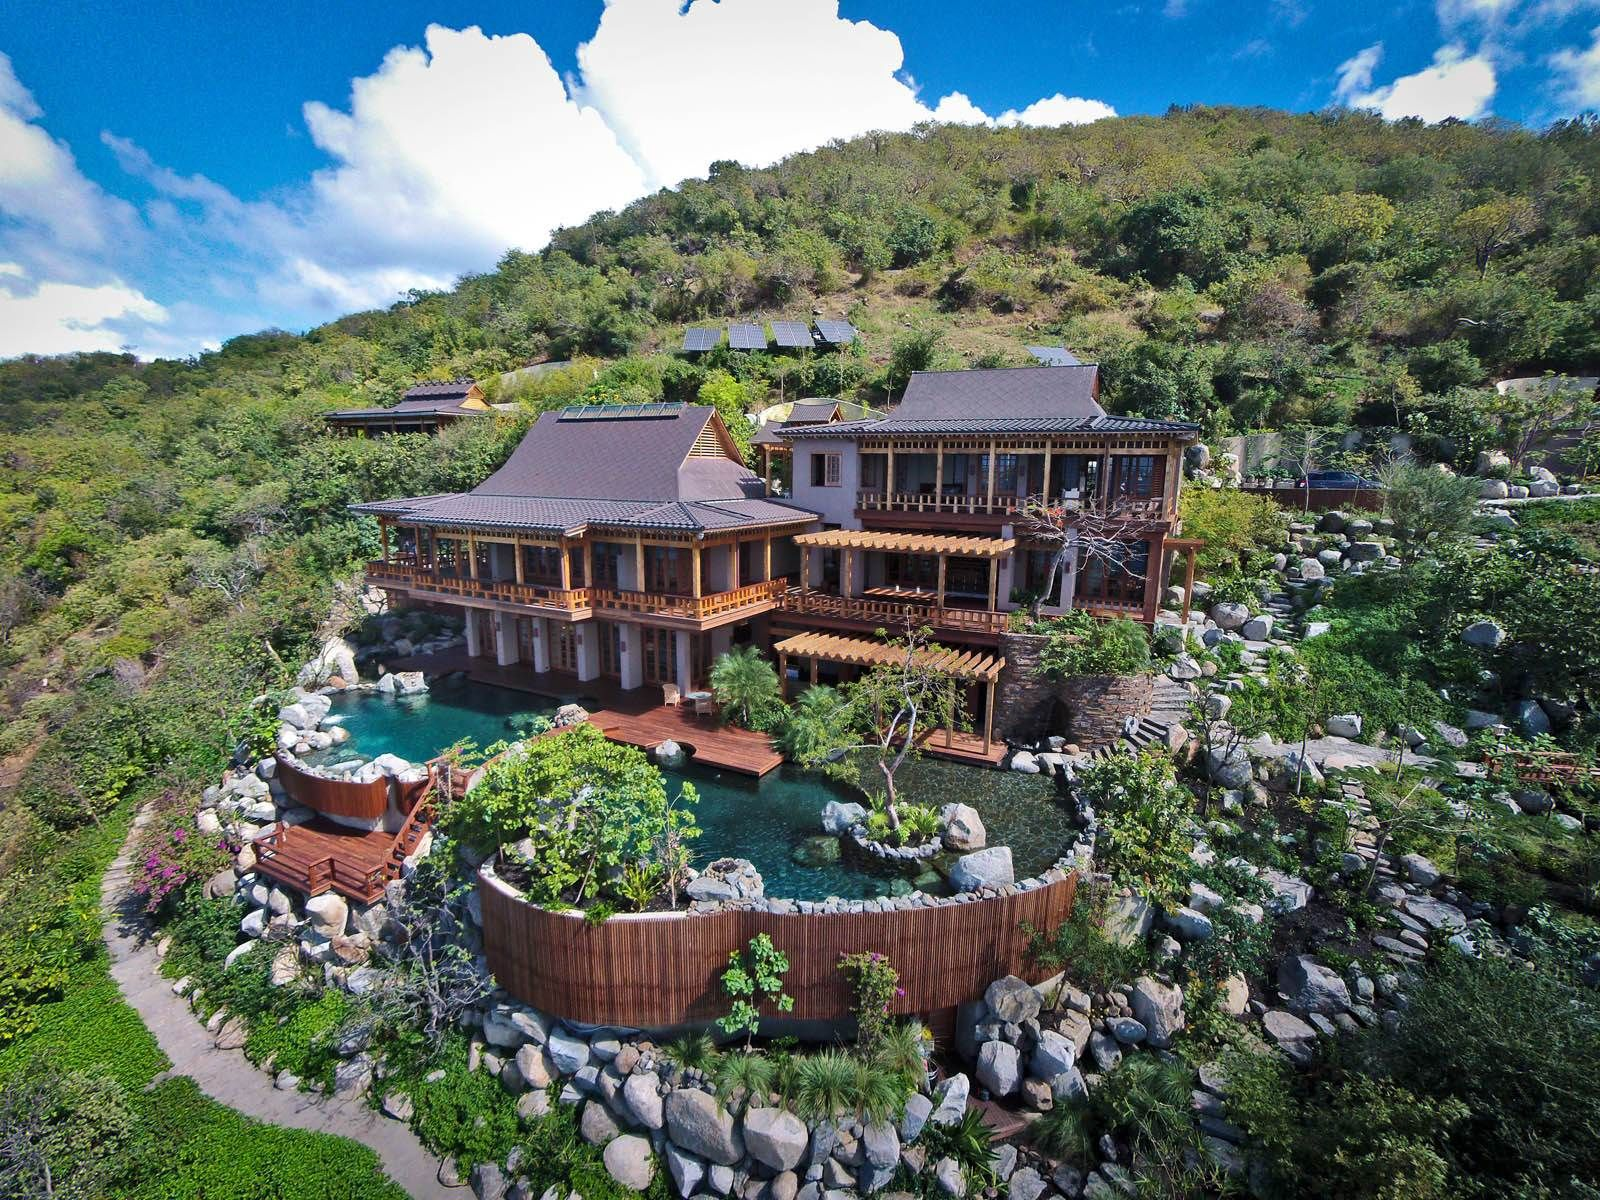 View This Luxury Home Located At Villa Katsura Other Virgin Gorda Virgin Gorda British Virgin Islands Sotheby 39 S International Realty Gives You ออกแบบบ าน